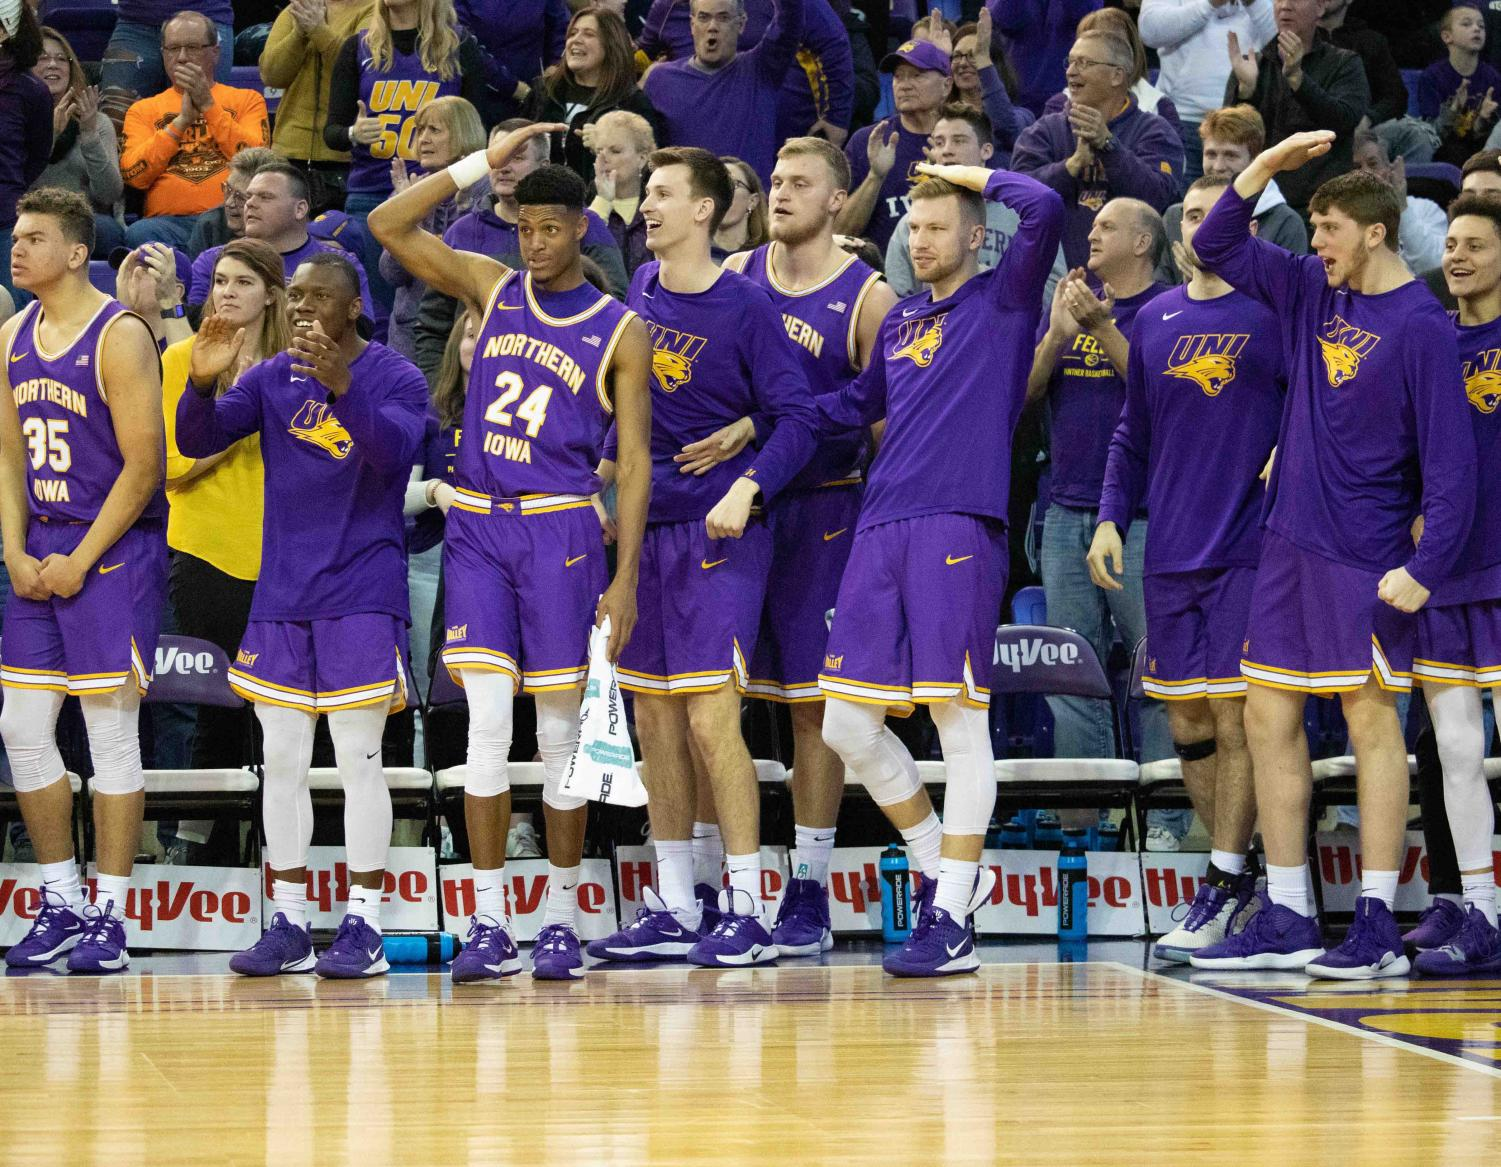 The UNI men's basketball team is sitting in first place in the conference and 21-3 overall, but has not yet garnered the attention of national polls.